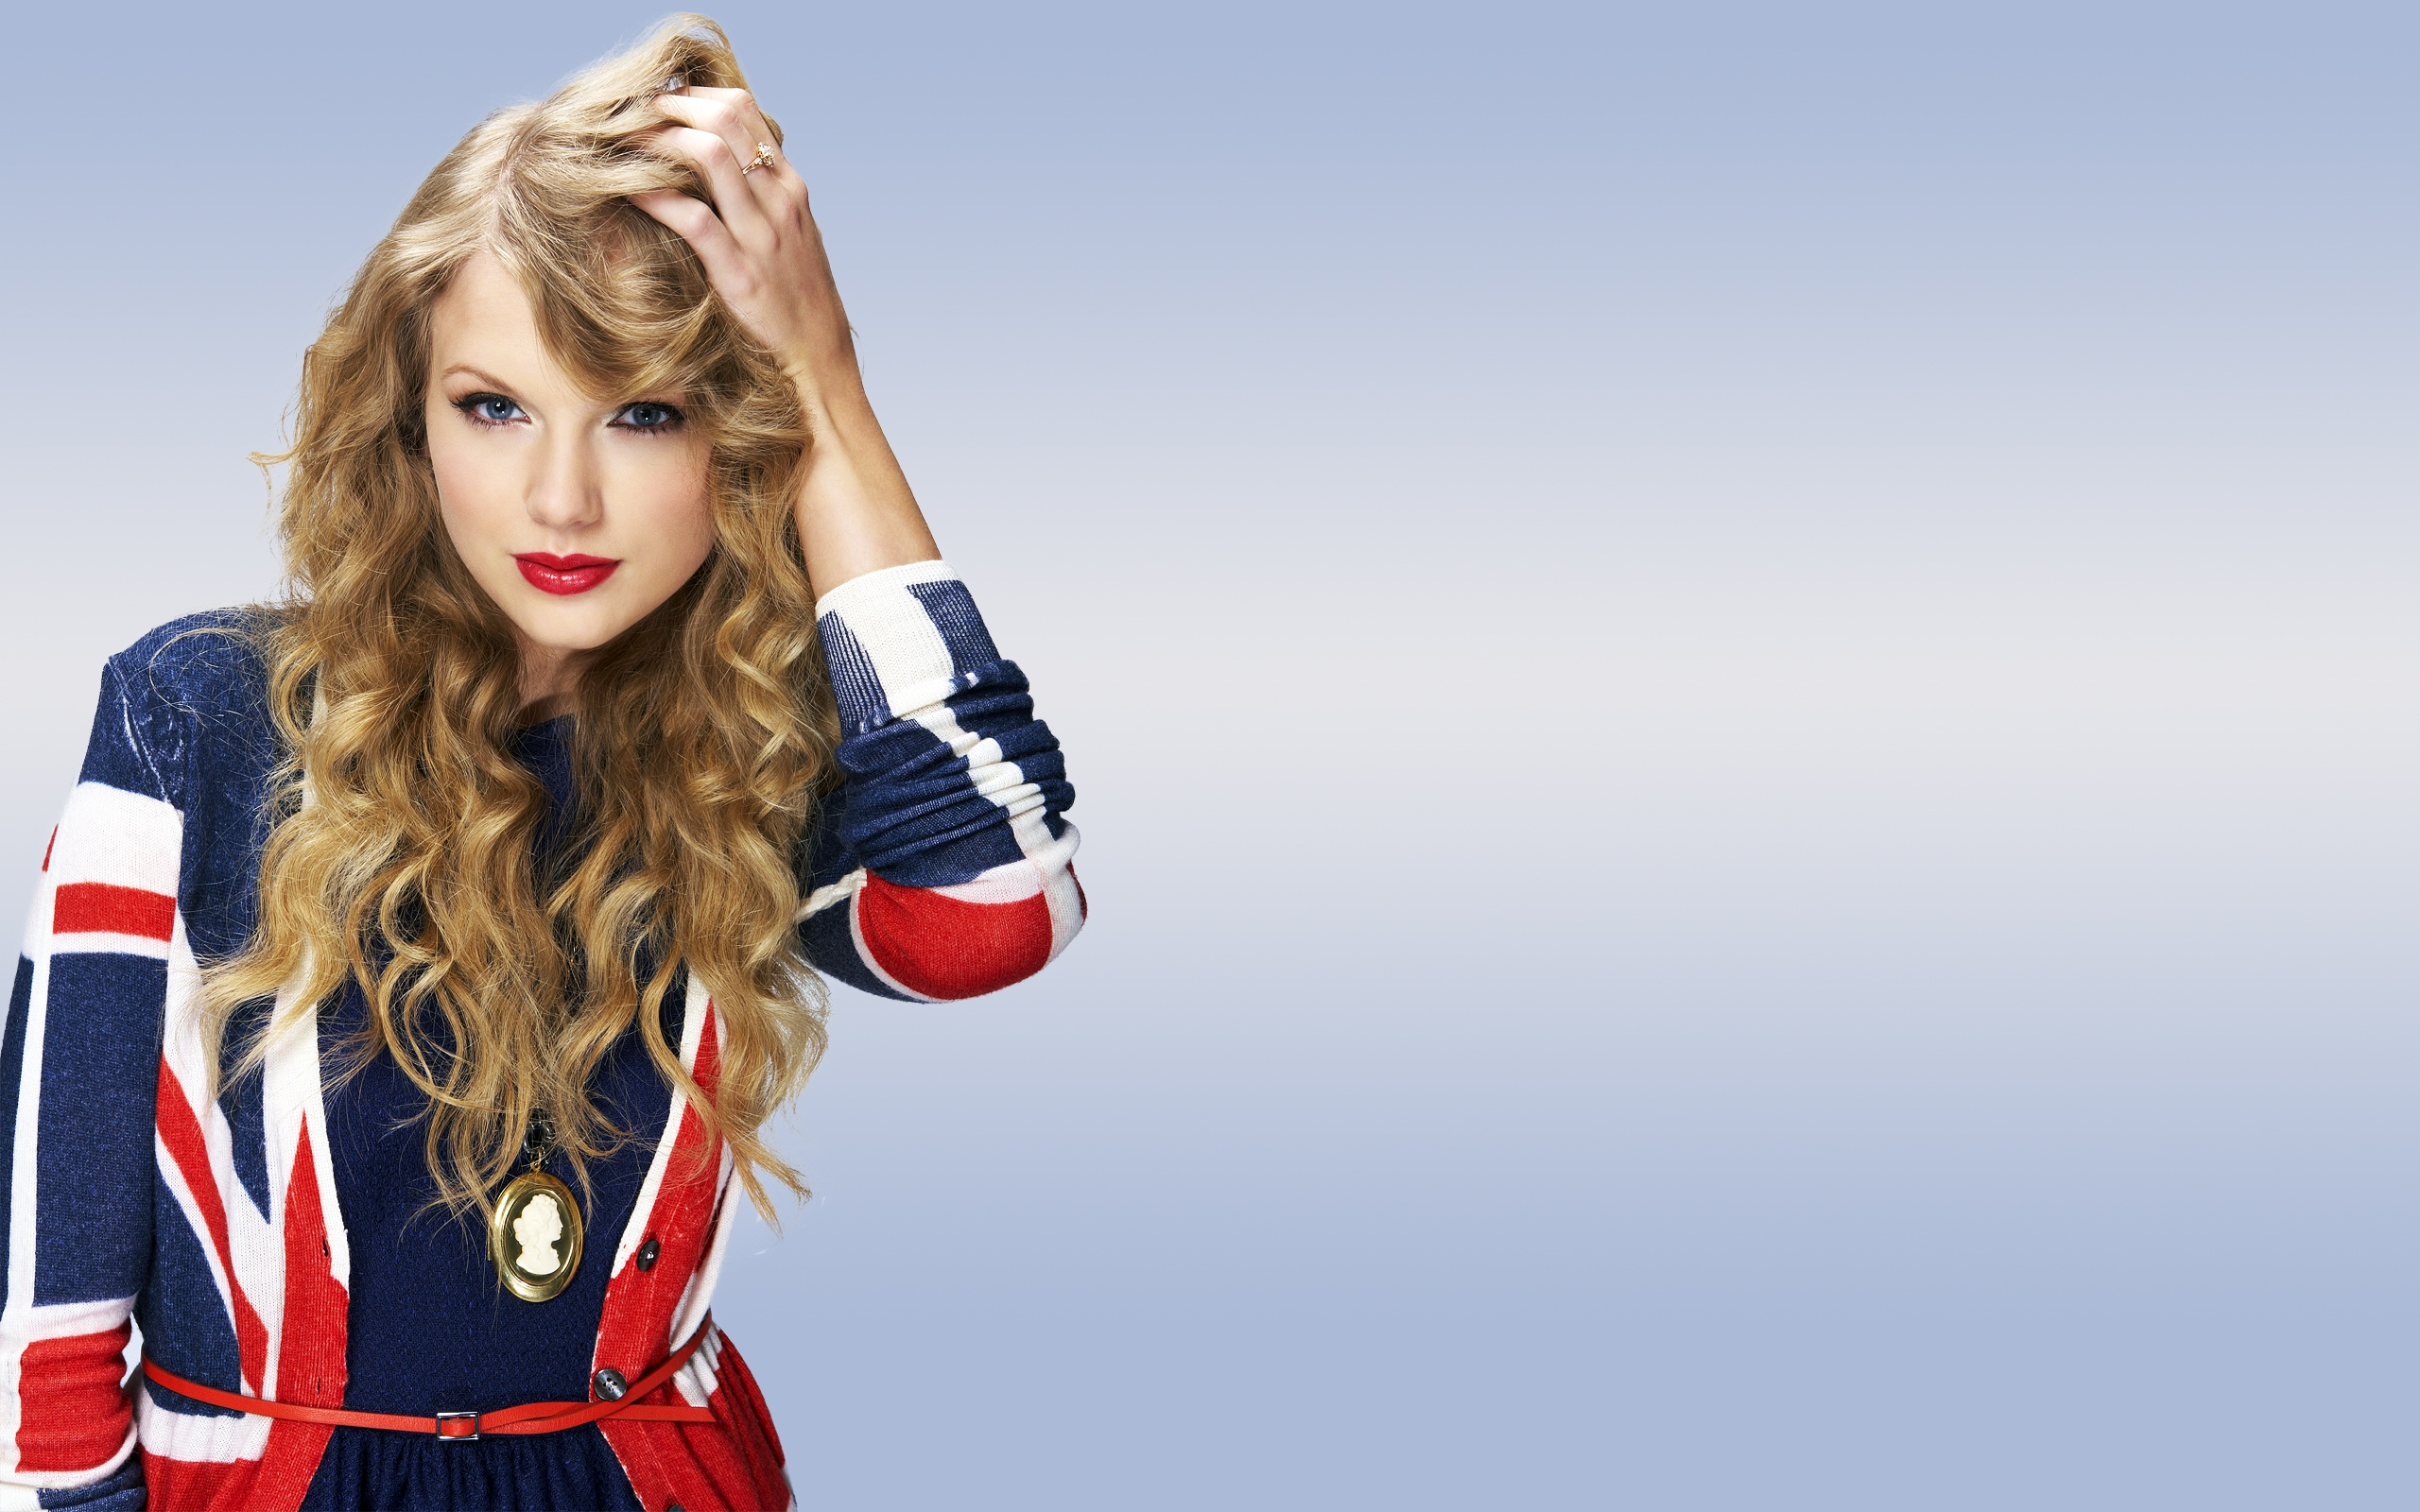 taylor swift styles wallpaper hd   Simply Wallpaper   Just 2560x1600